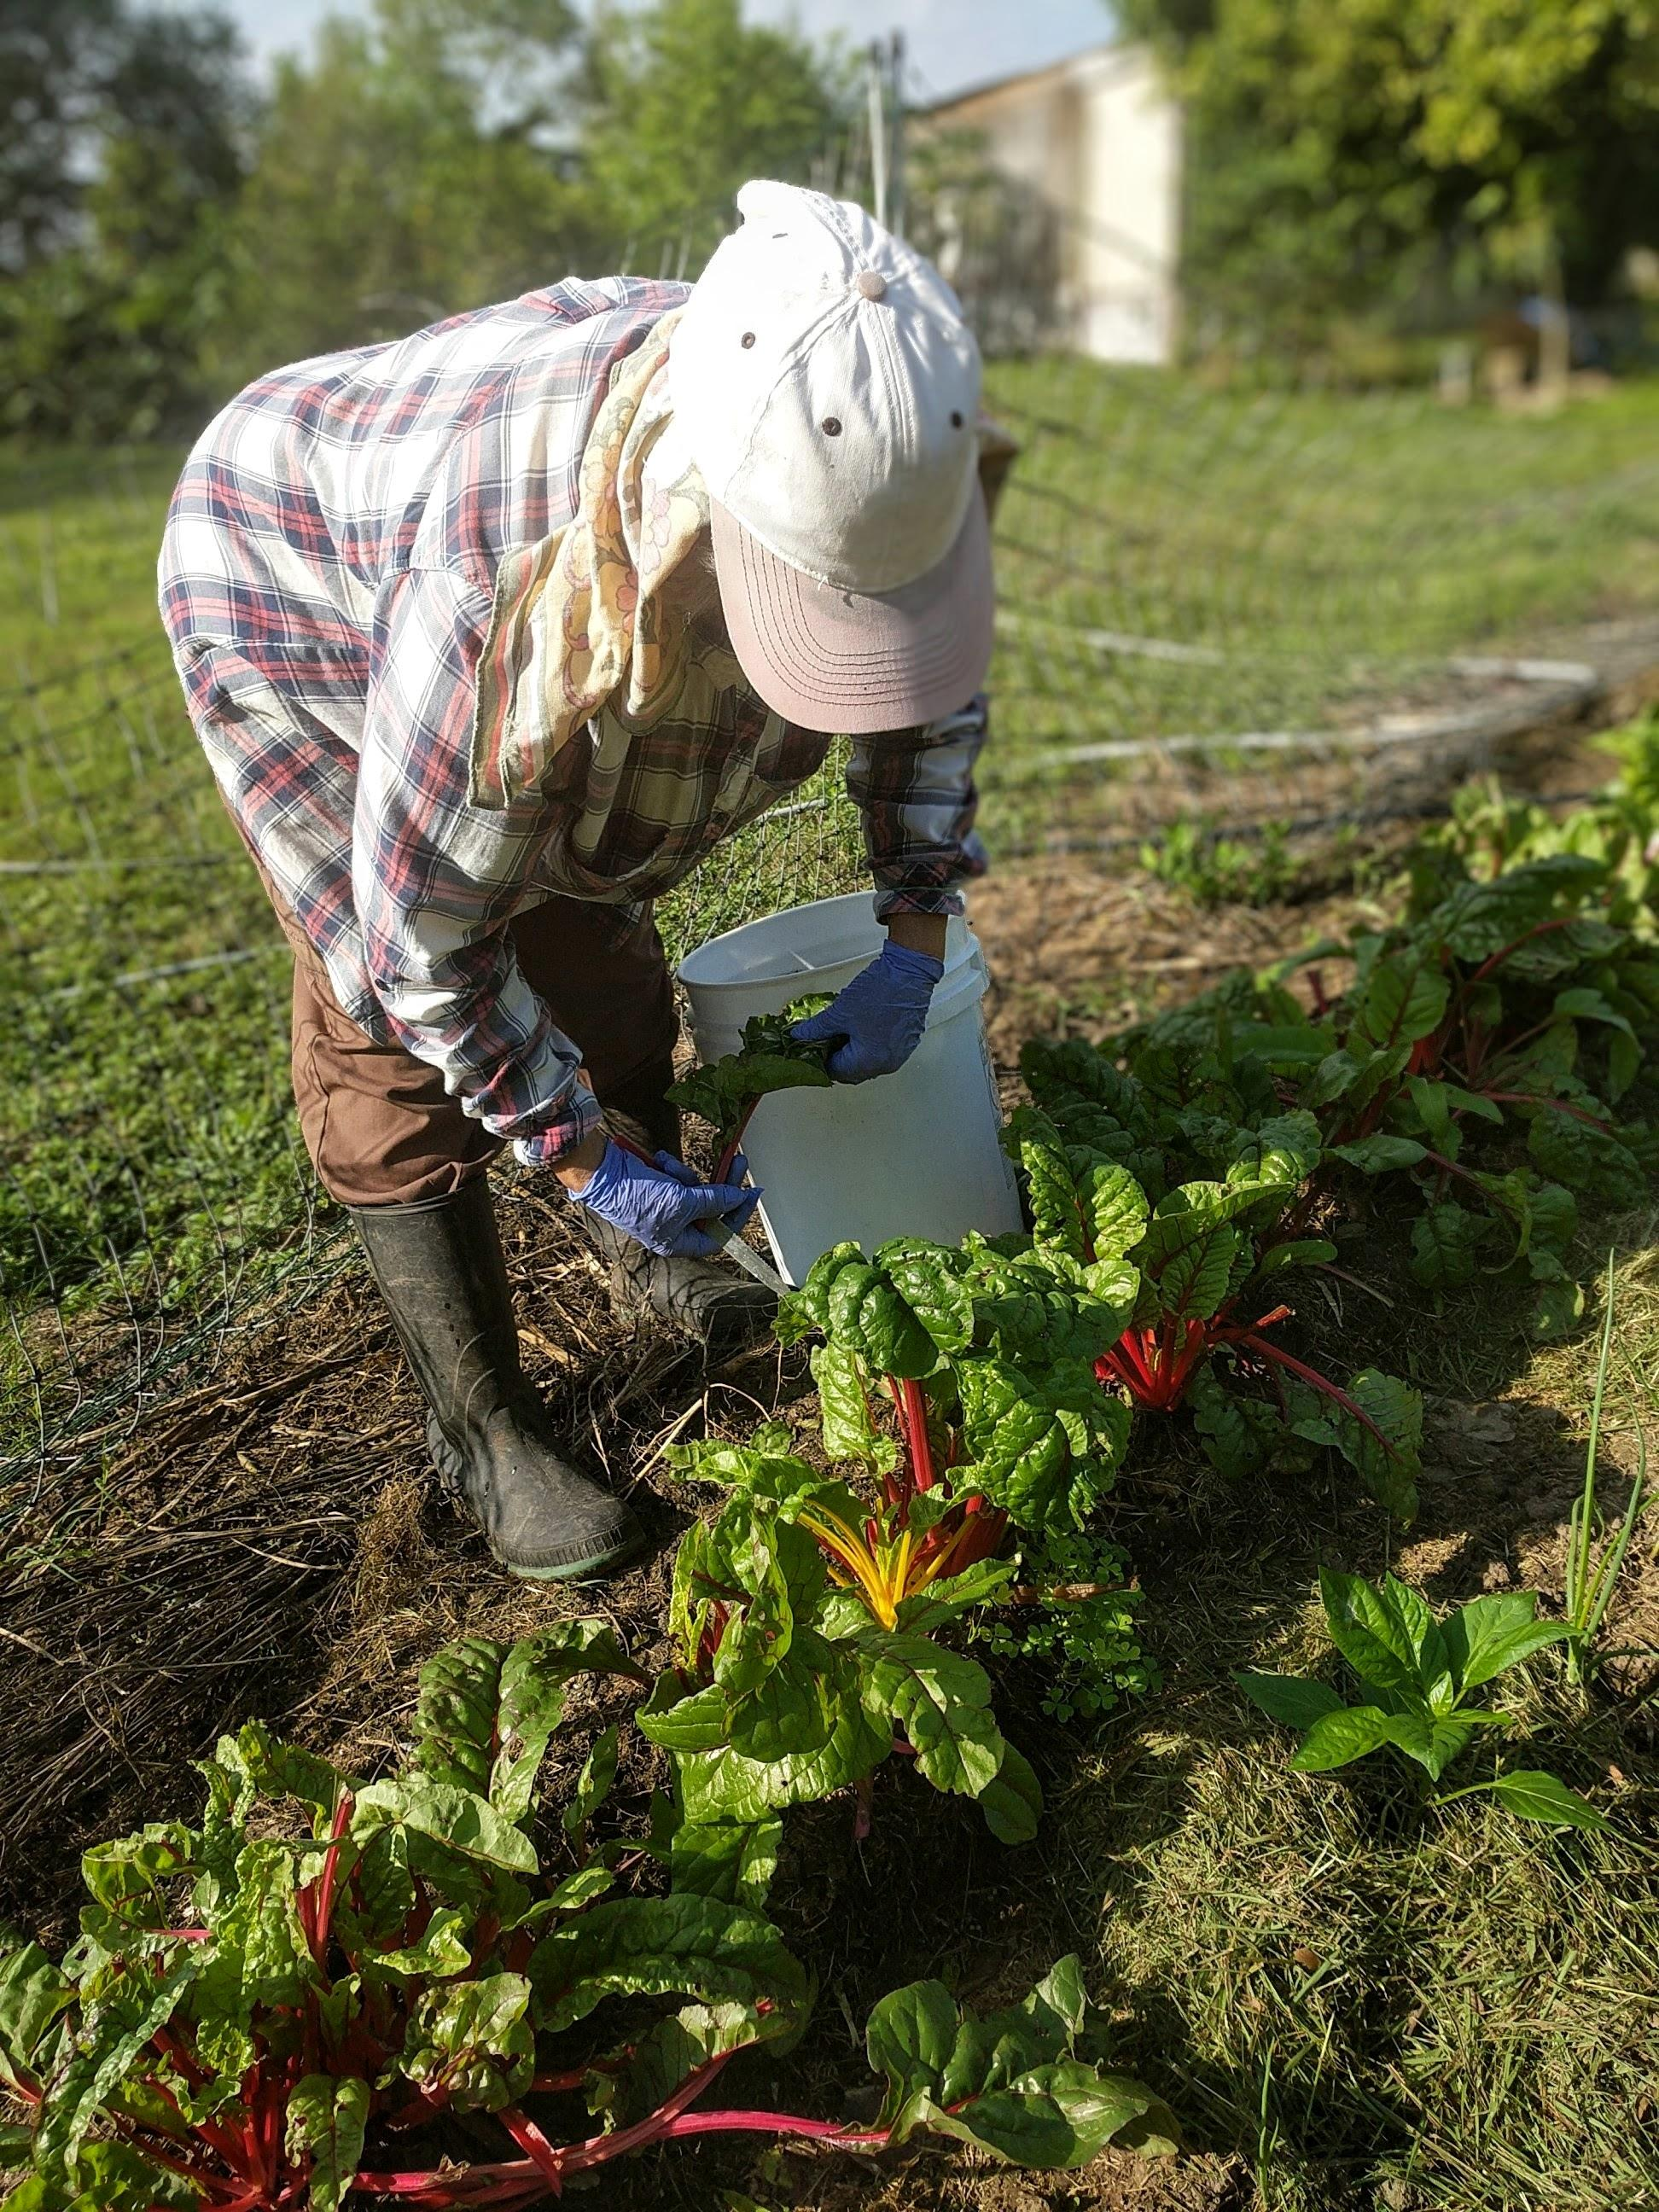 Woman working in vegetable field, wearing a white hat